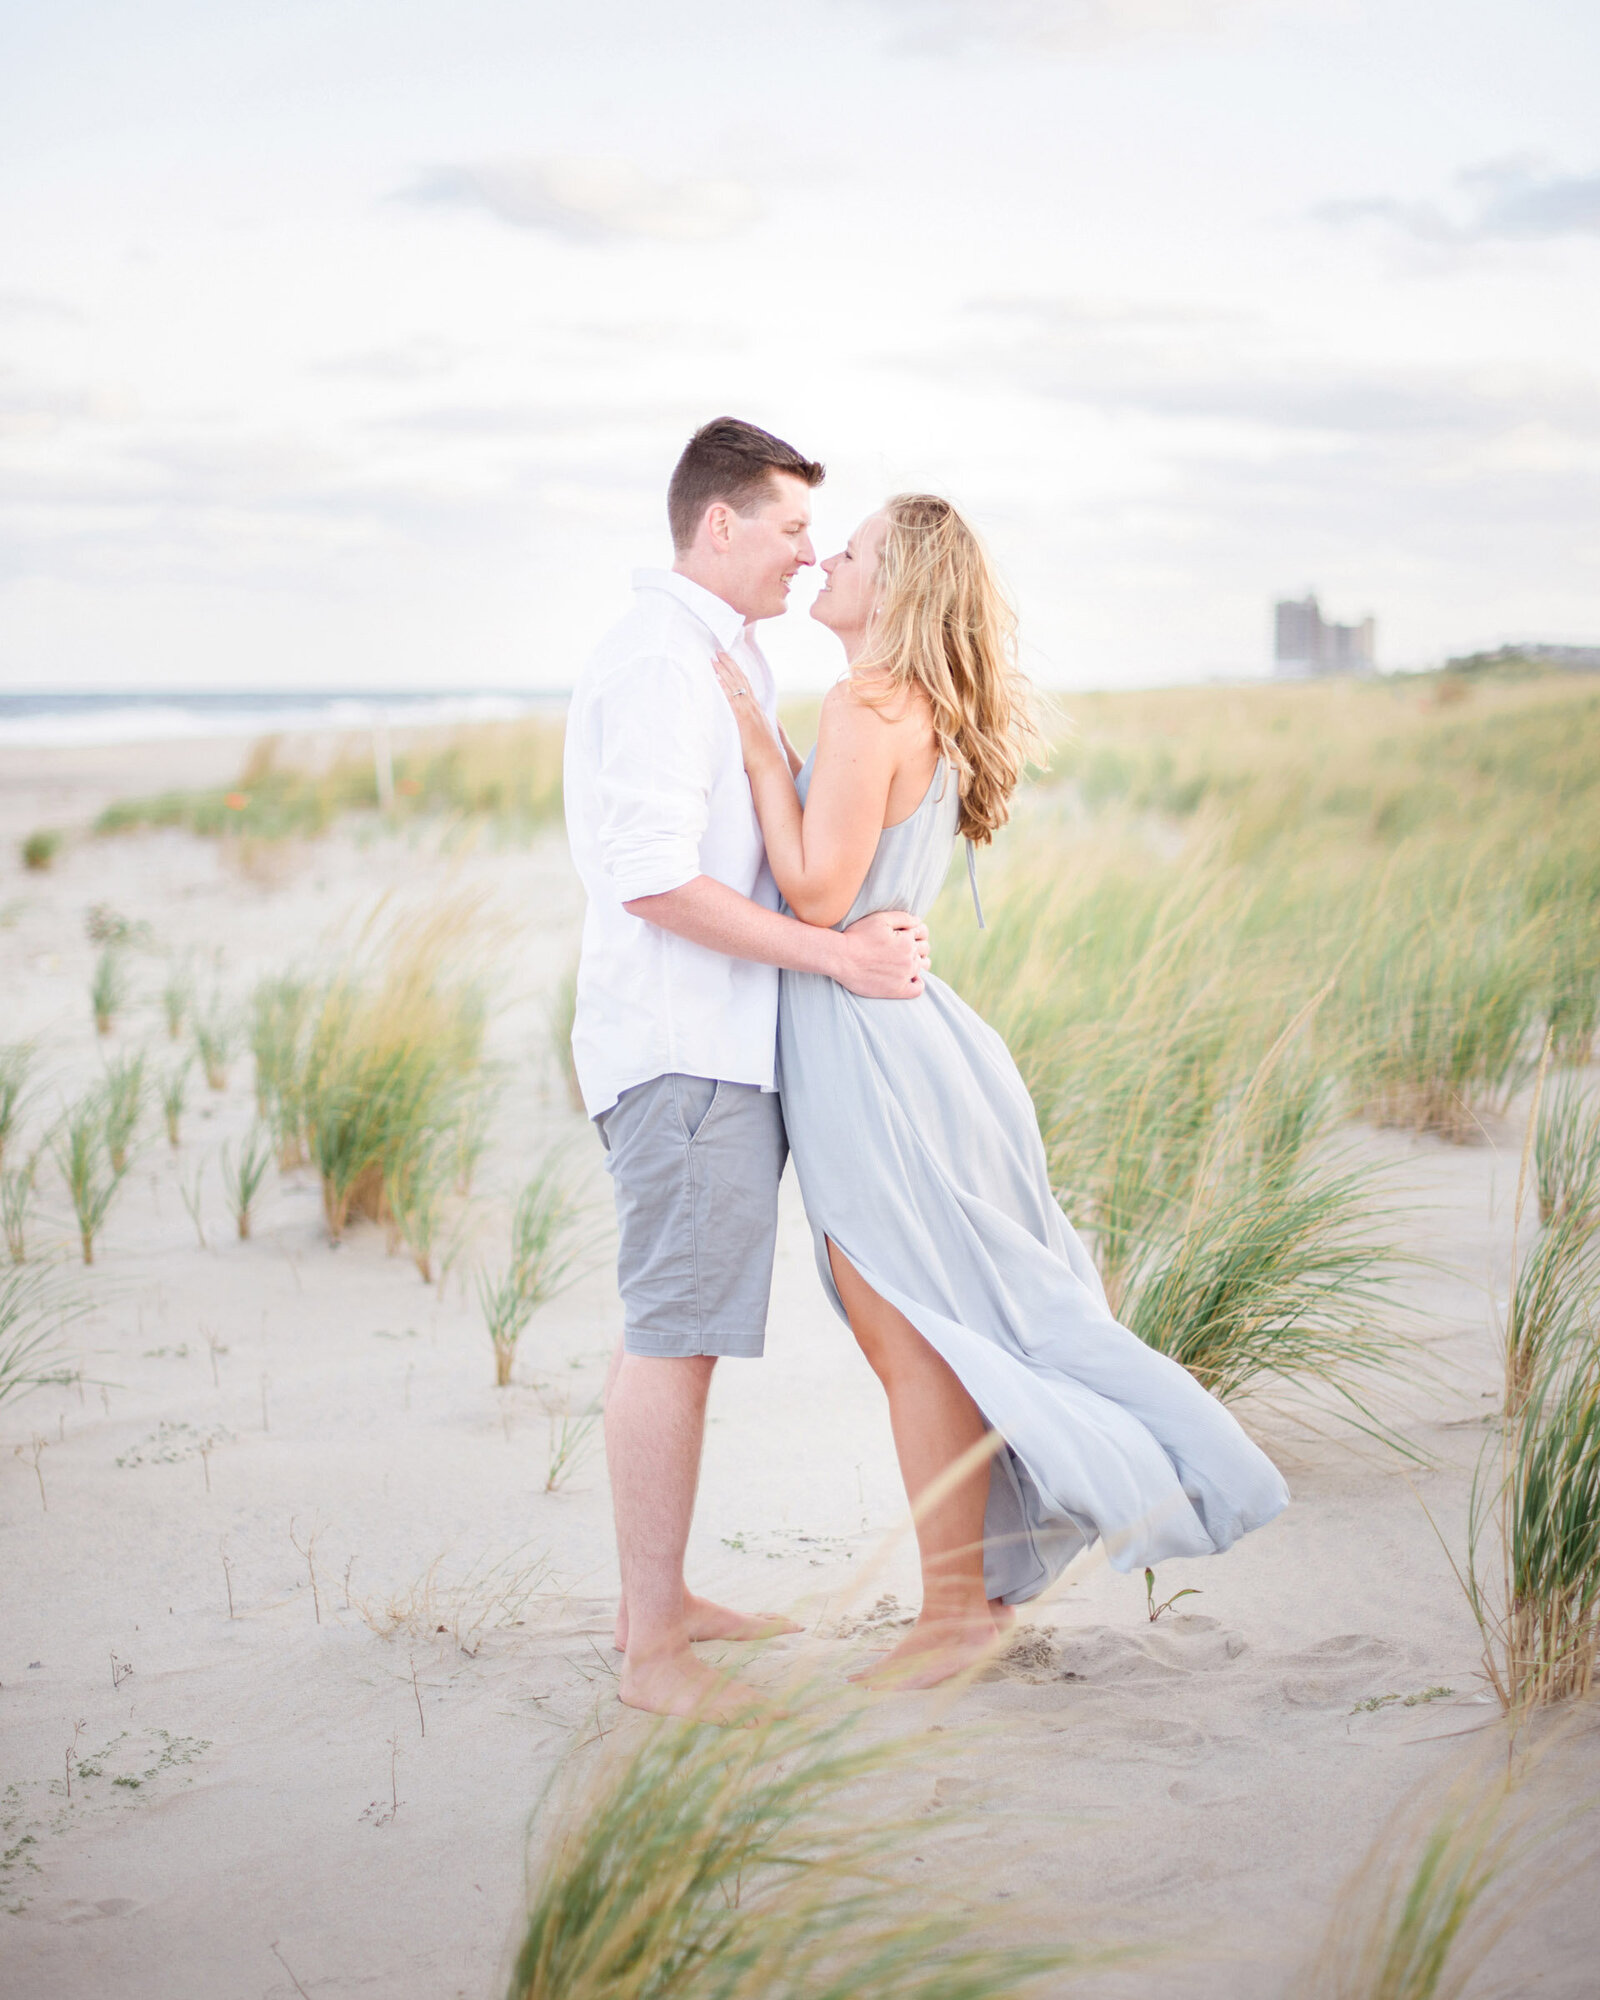 16-hudson-valley-ny-engagement-photographer